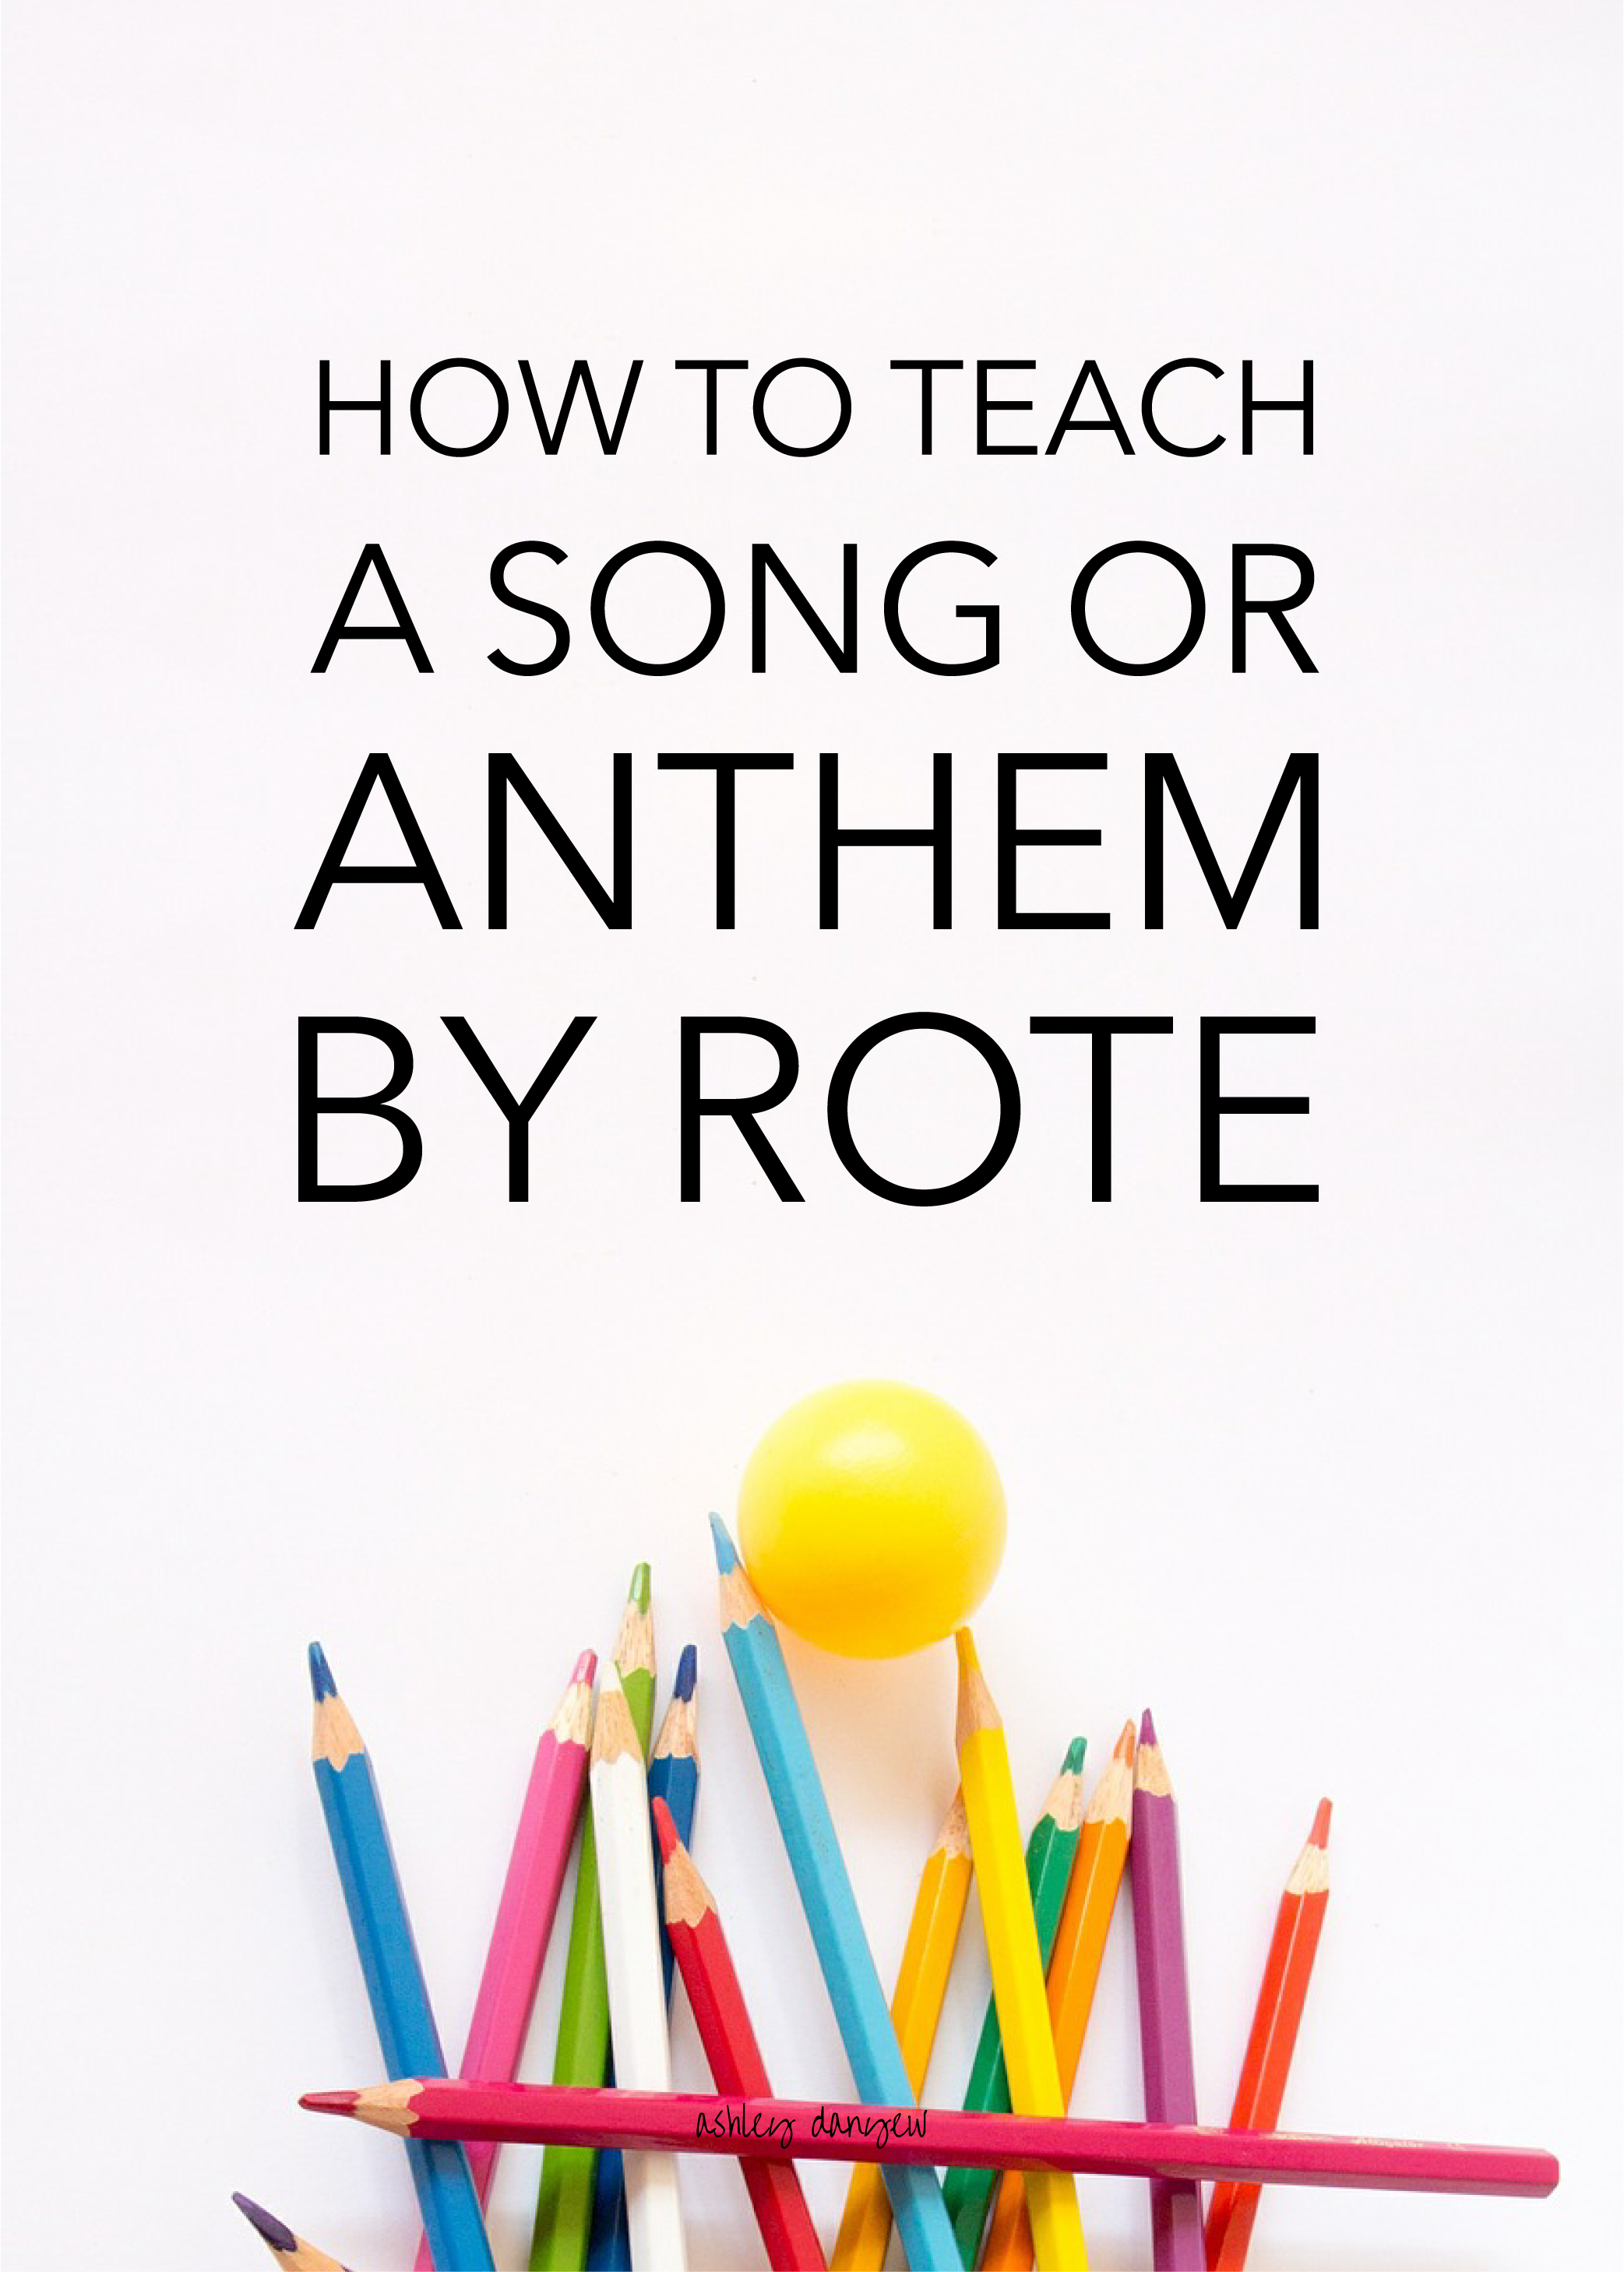 Copy of How to Teach a Song or Anthem By Rote